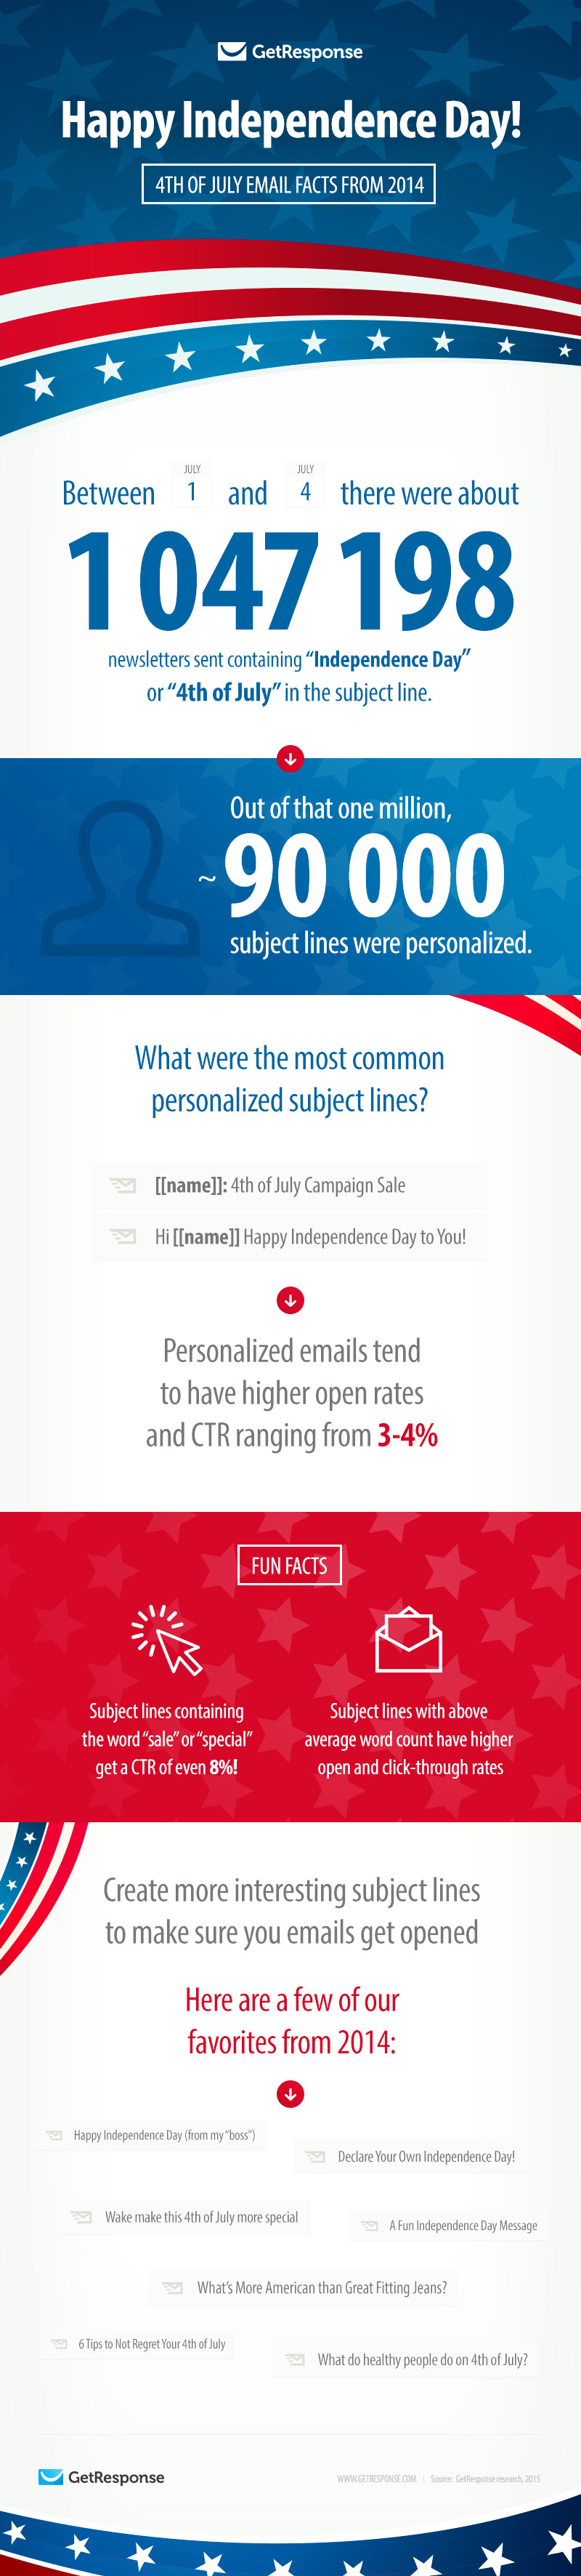 4th of July Email Facts from 2014